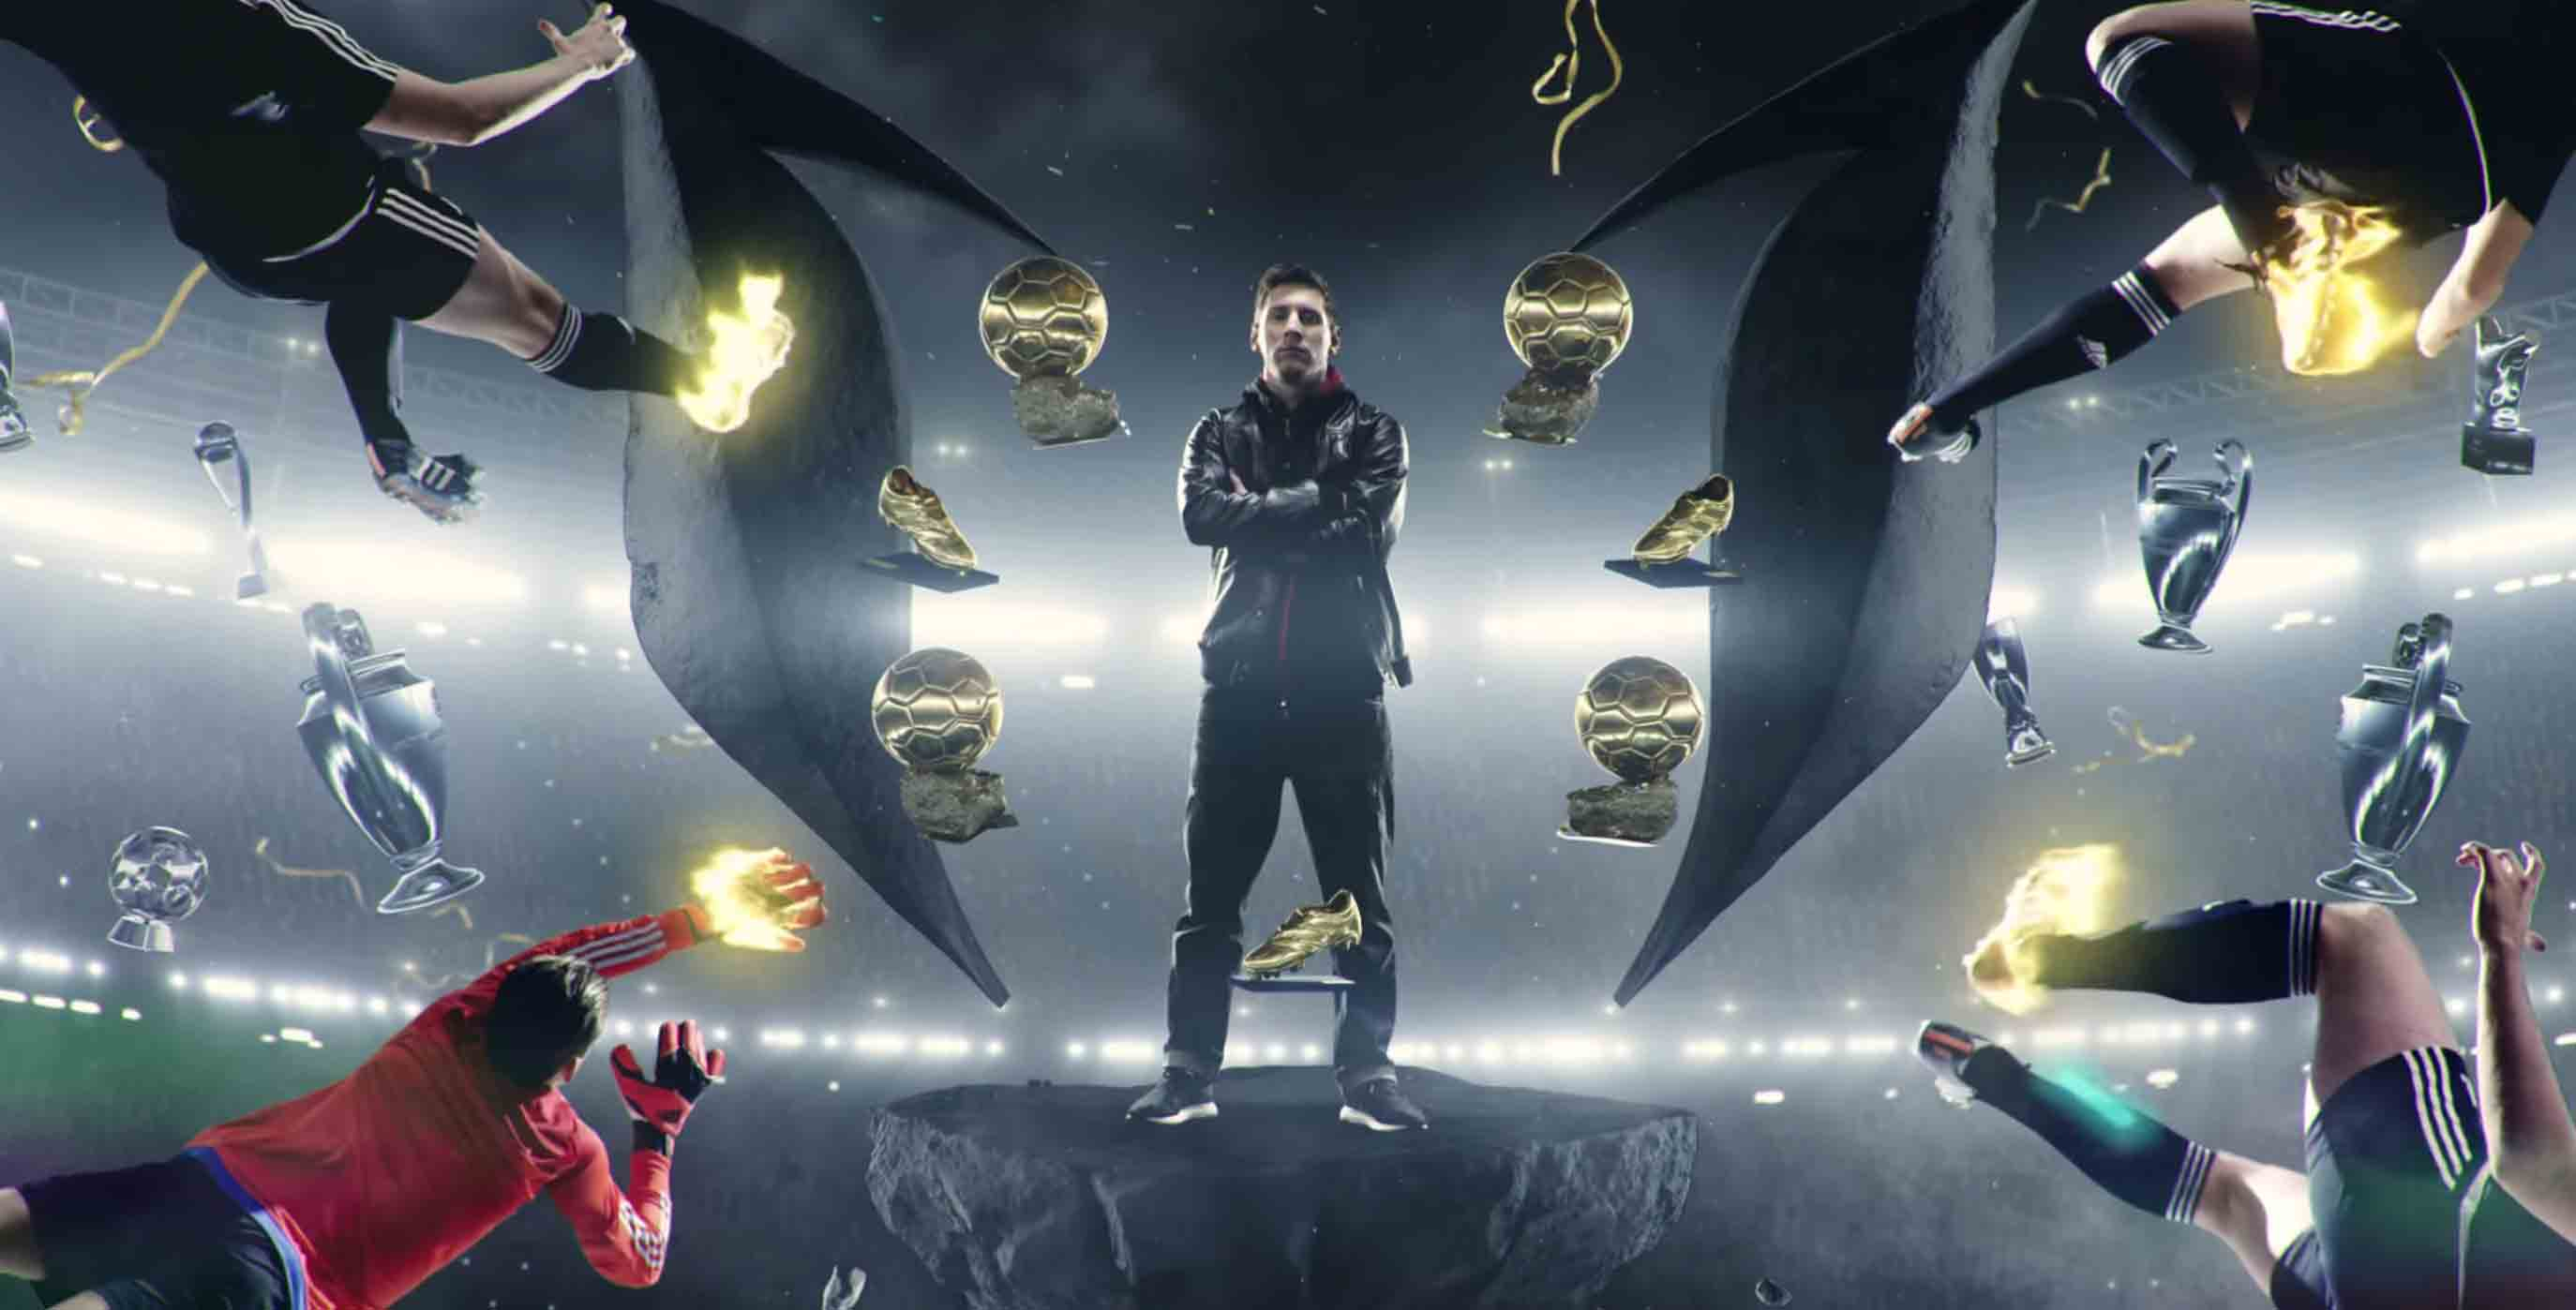 Excelente inversión Nueva llegada  Leo Messi — There Will Be Haters — adidas Football | Bonitaworld Media  Production SL